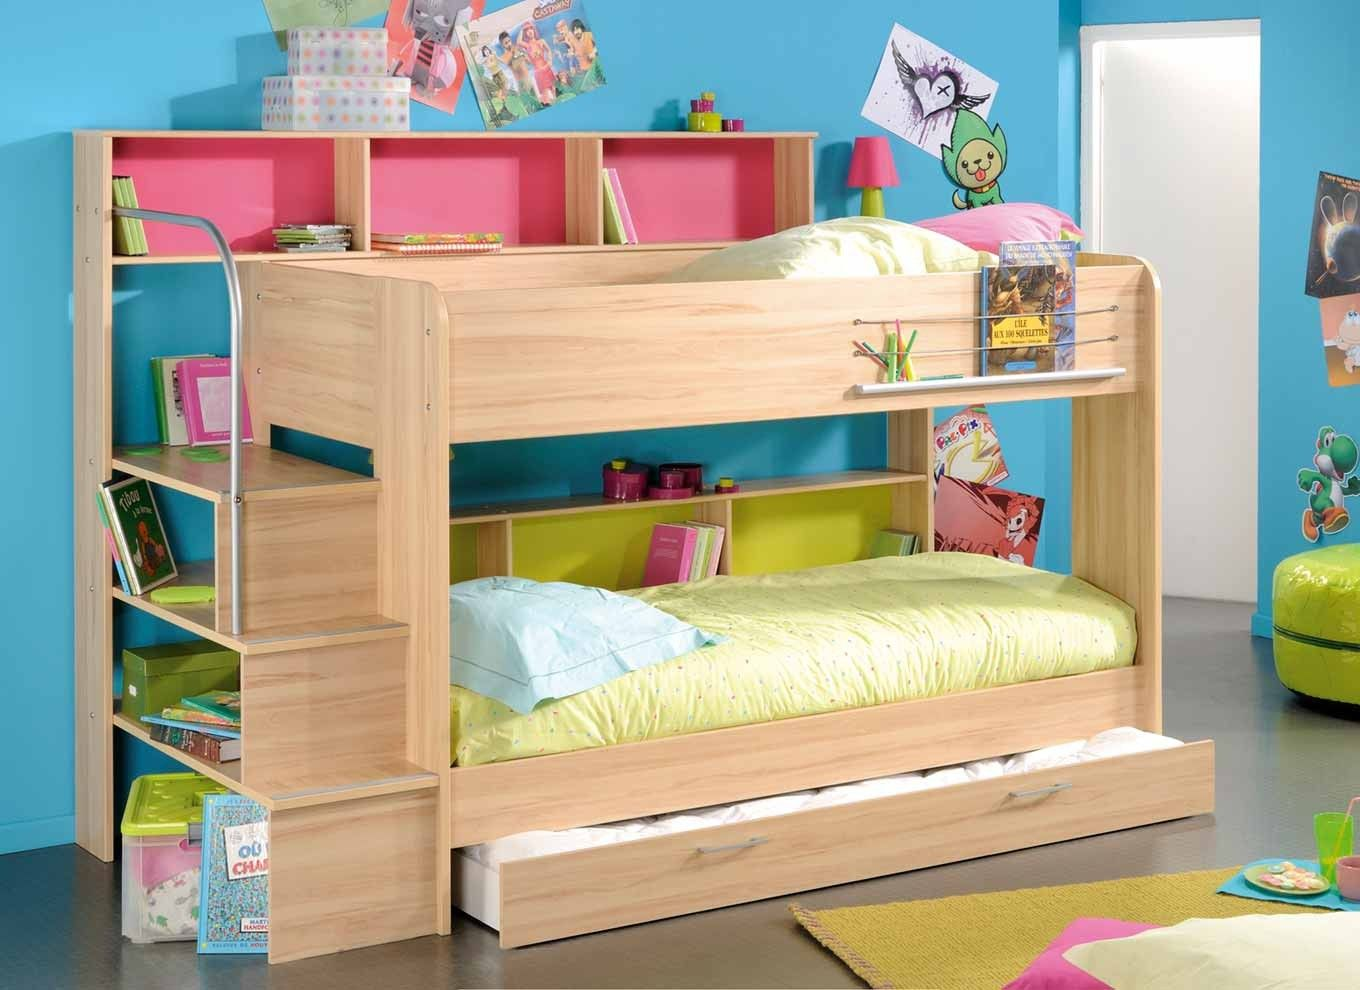 Double deck bedroom for kids girls - Double Bunk Beds With Slide Lydia Bunk Bed